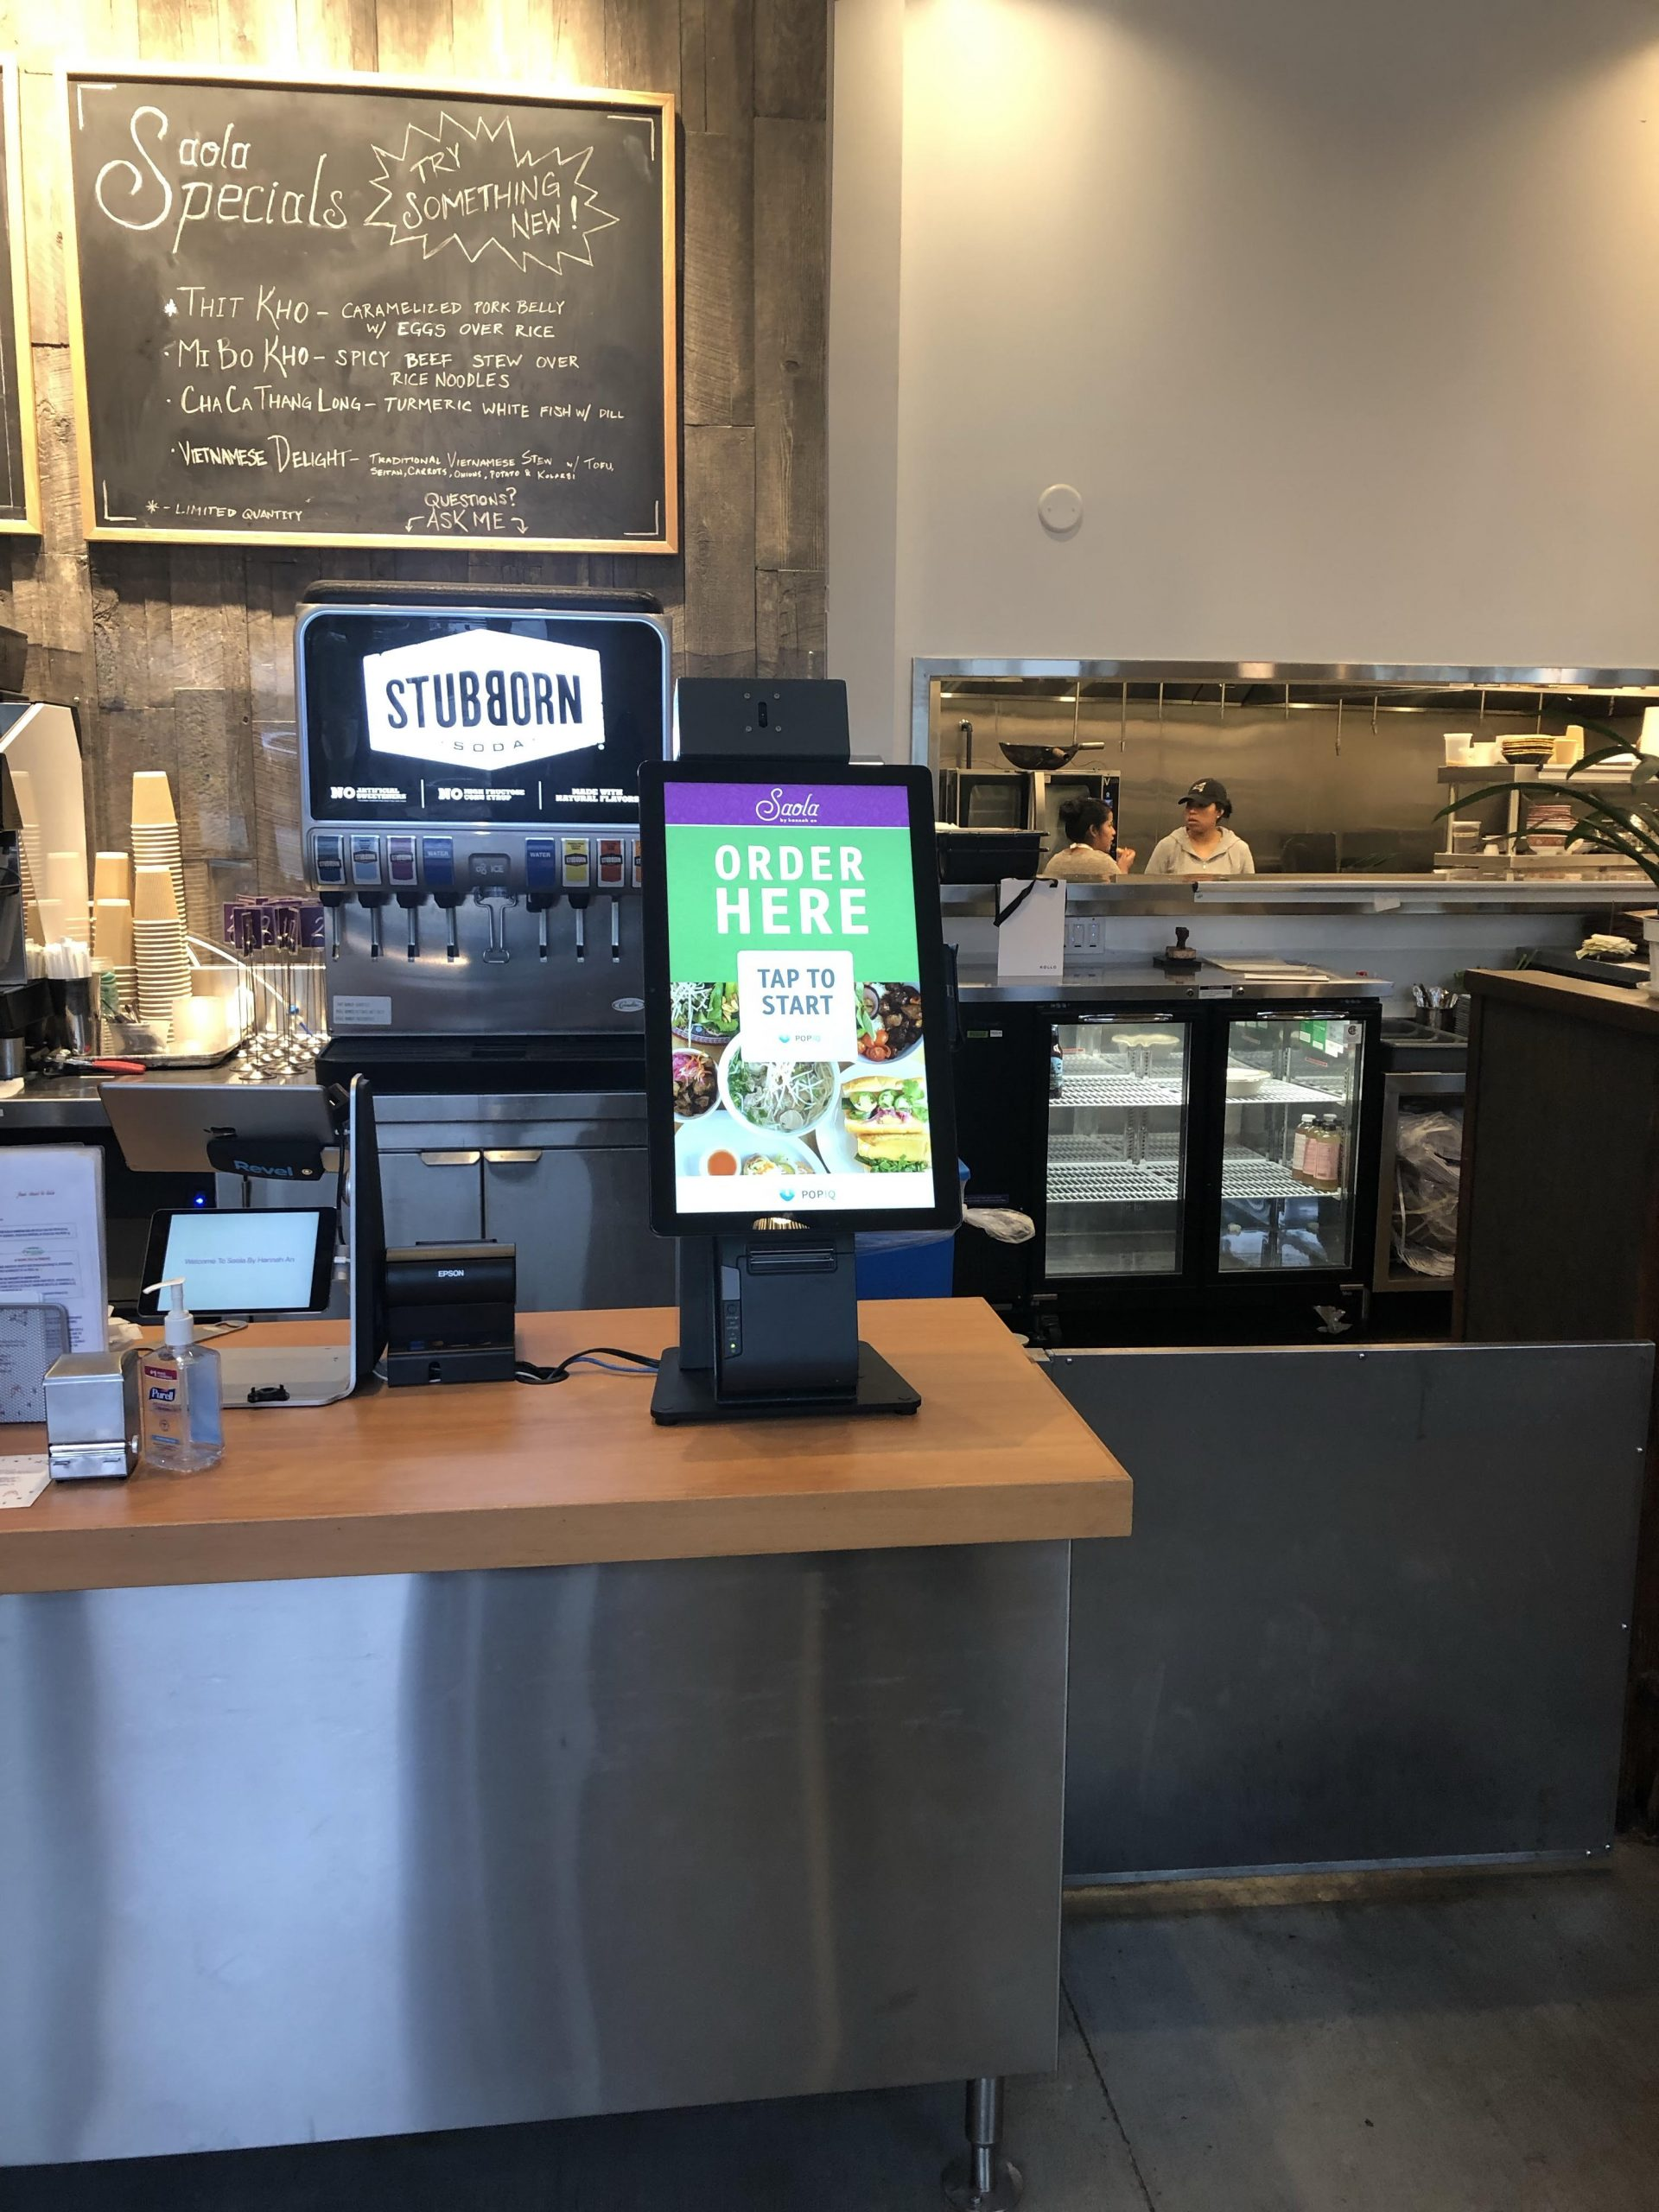 Hungry for a Better Fast Food Experience? This Payments Technology Can Make that Happen